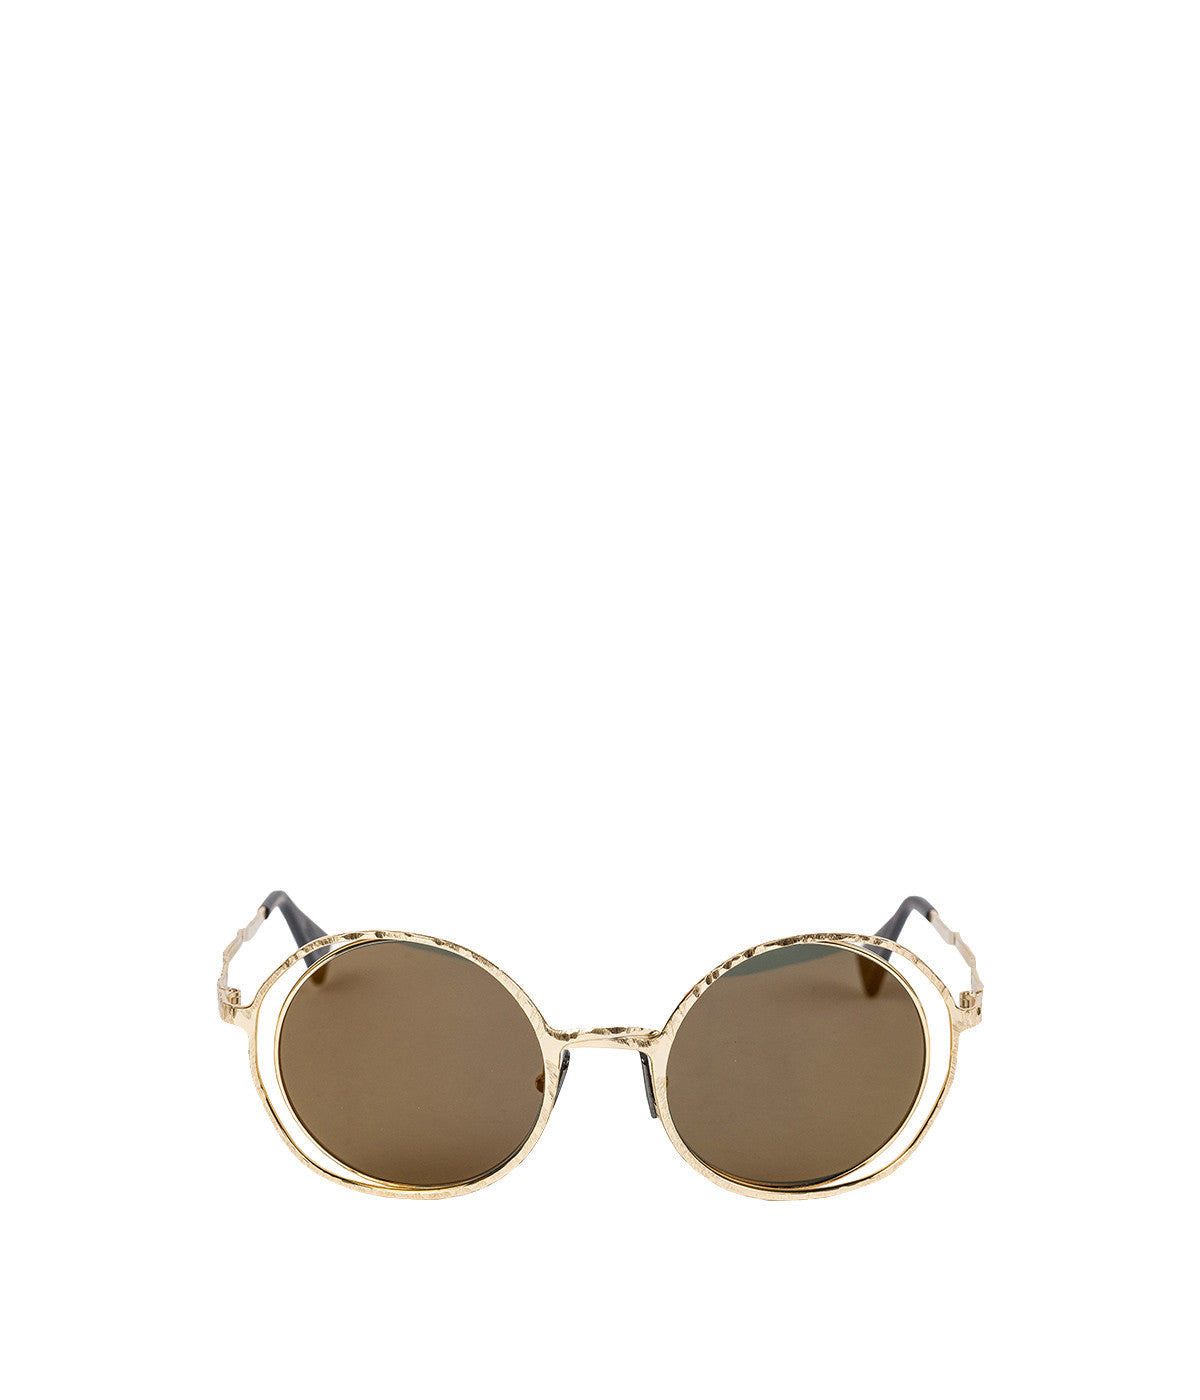 H10 Gold Metal Sunglasses